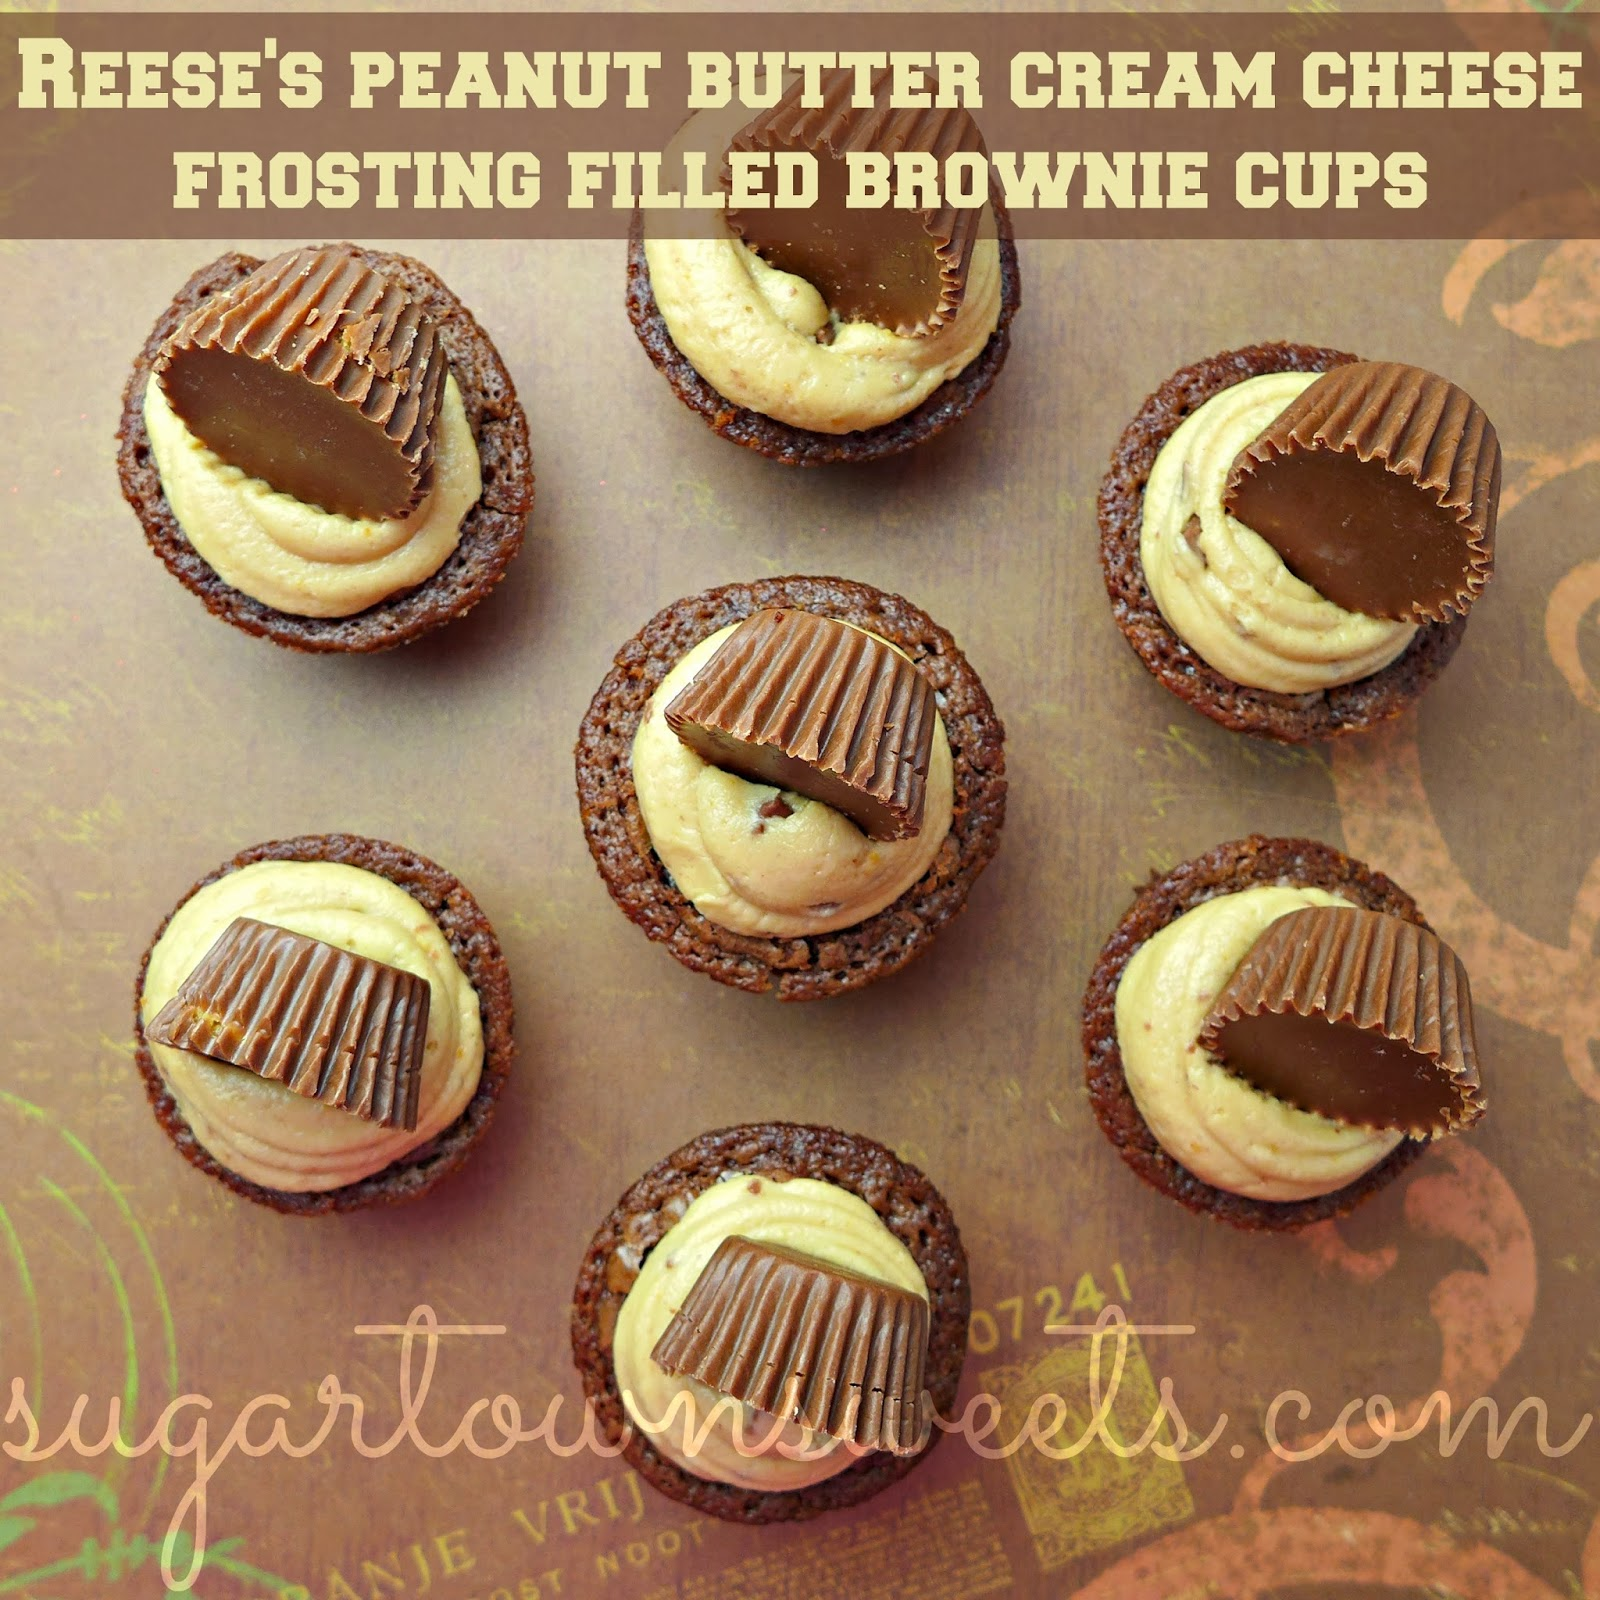 Reese's Peanut Butter Cream Cheese Frosting Filled Brownie Cups Recipe